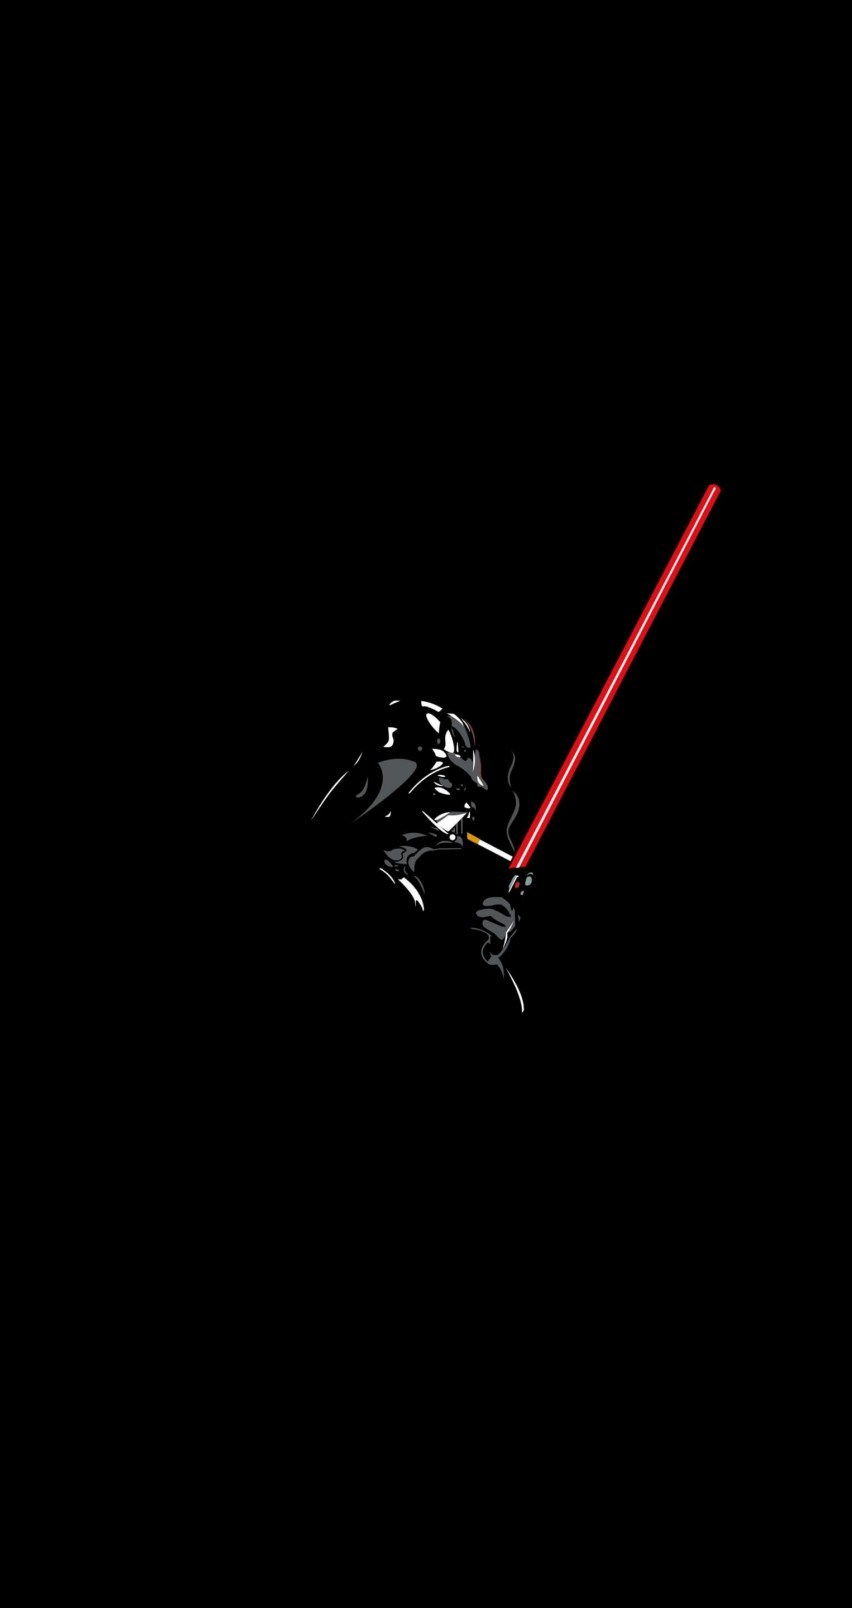 Darth Vader Lighting a Cigarette Wallpaper for Apple iPhone 6 / 6s